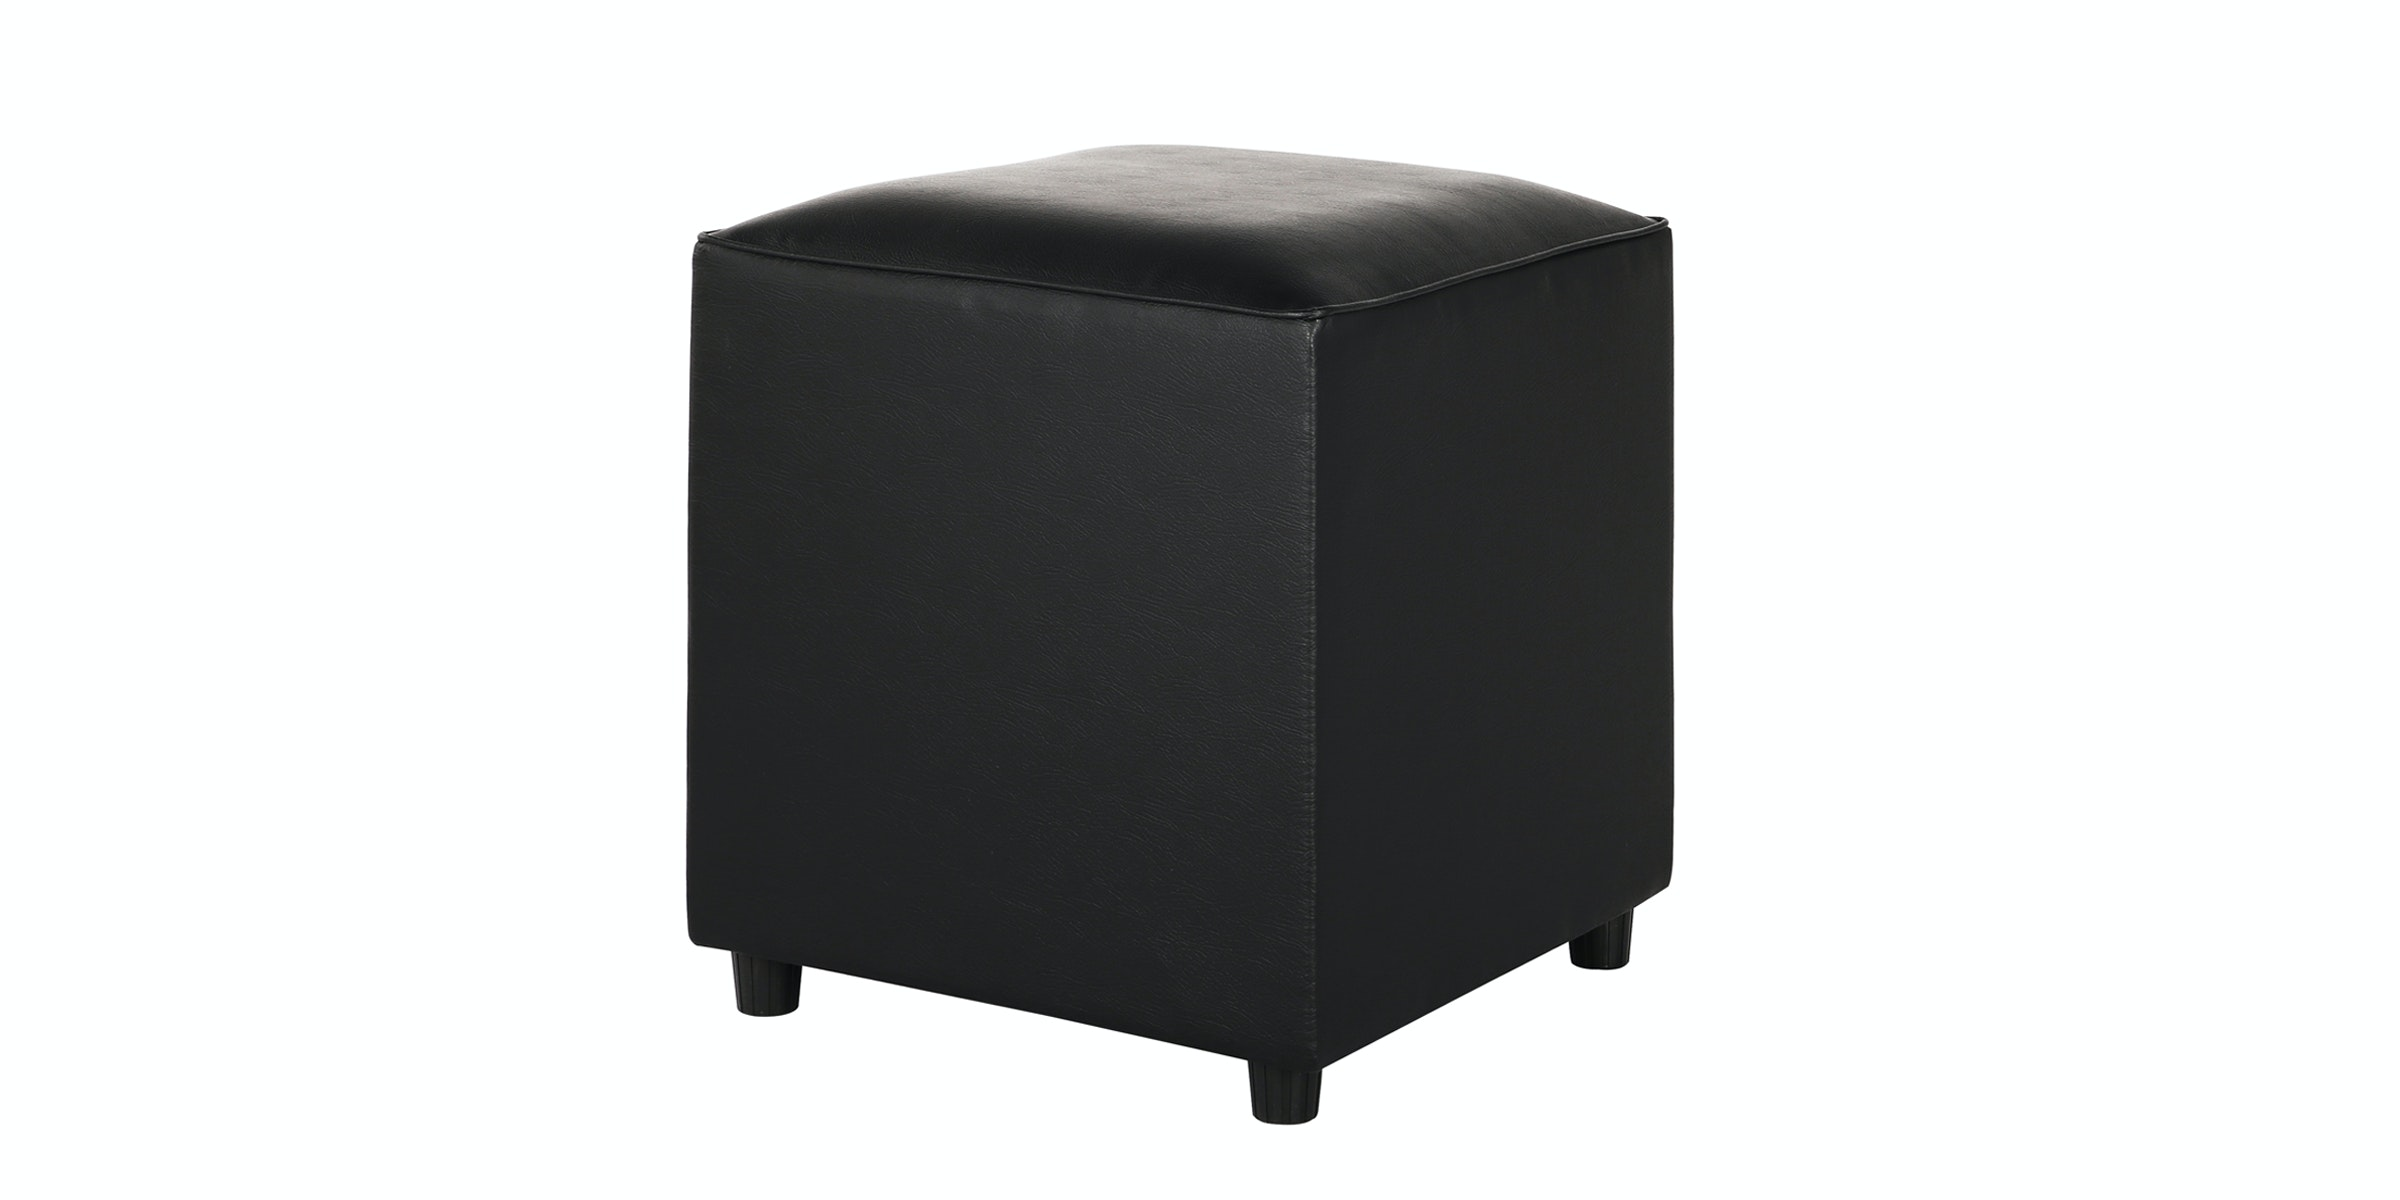 Lotte Retail Maybell Maybell Puff Chair Oscar Black